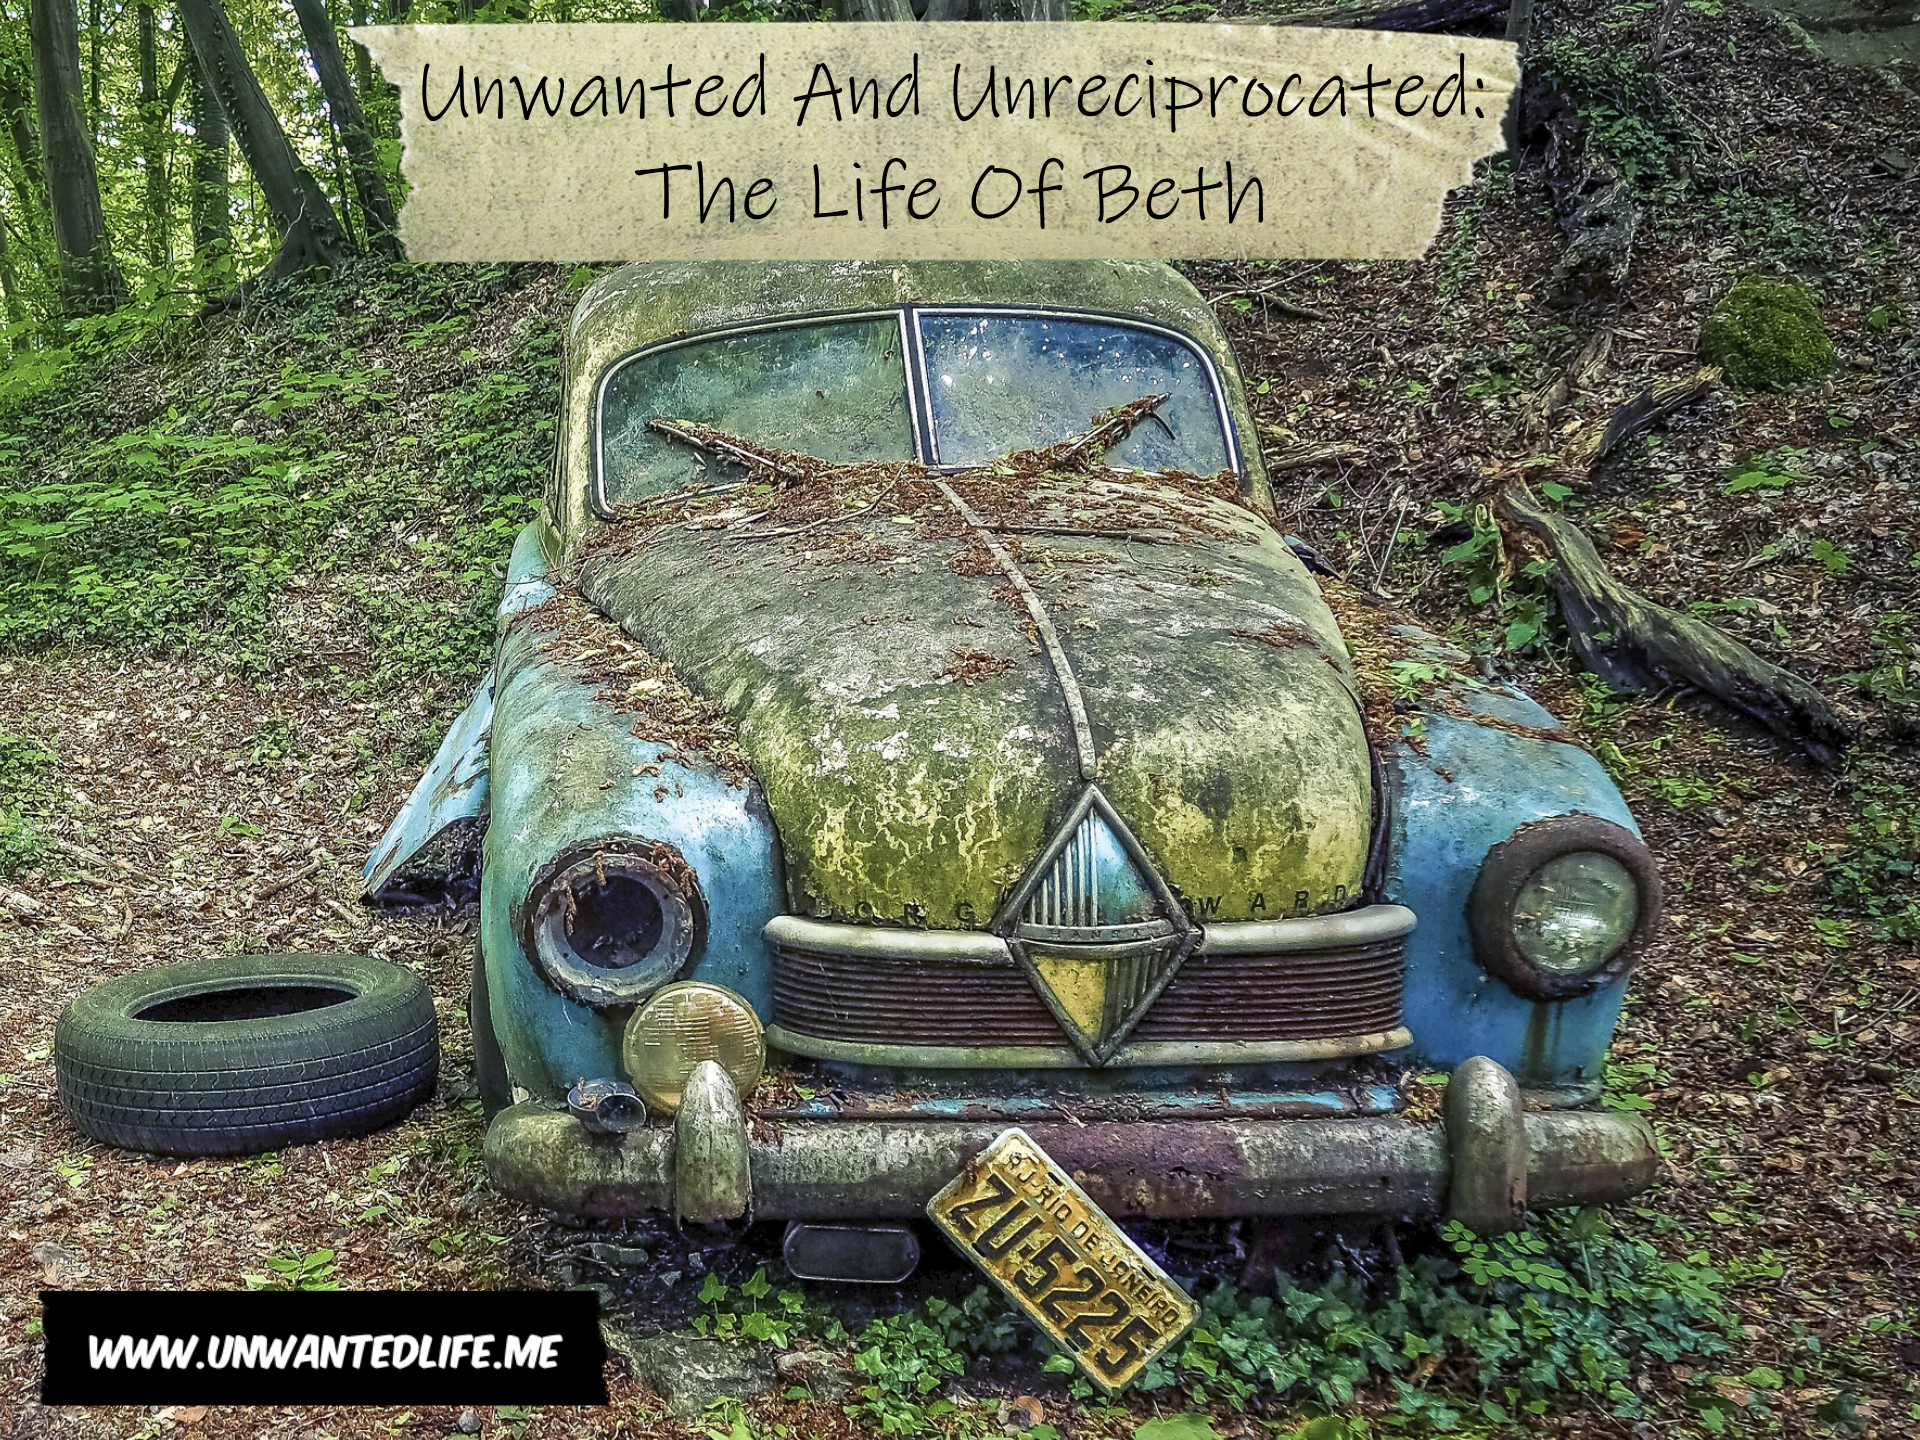 A very old, rusted, and unwanted car abandoned in the woods